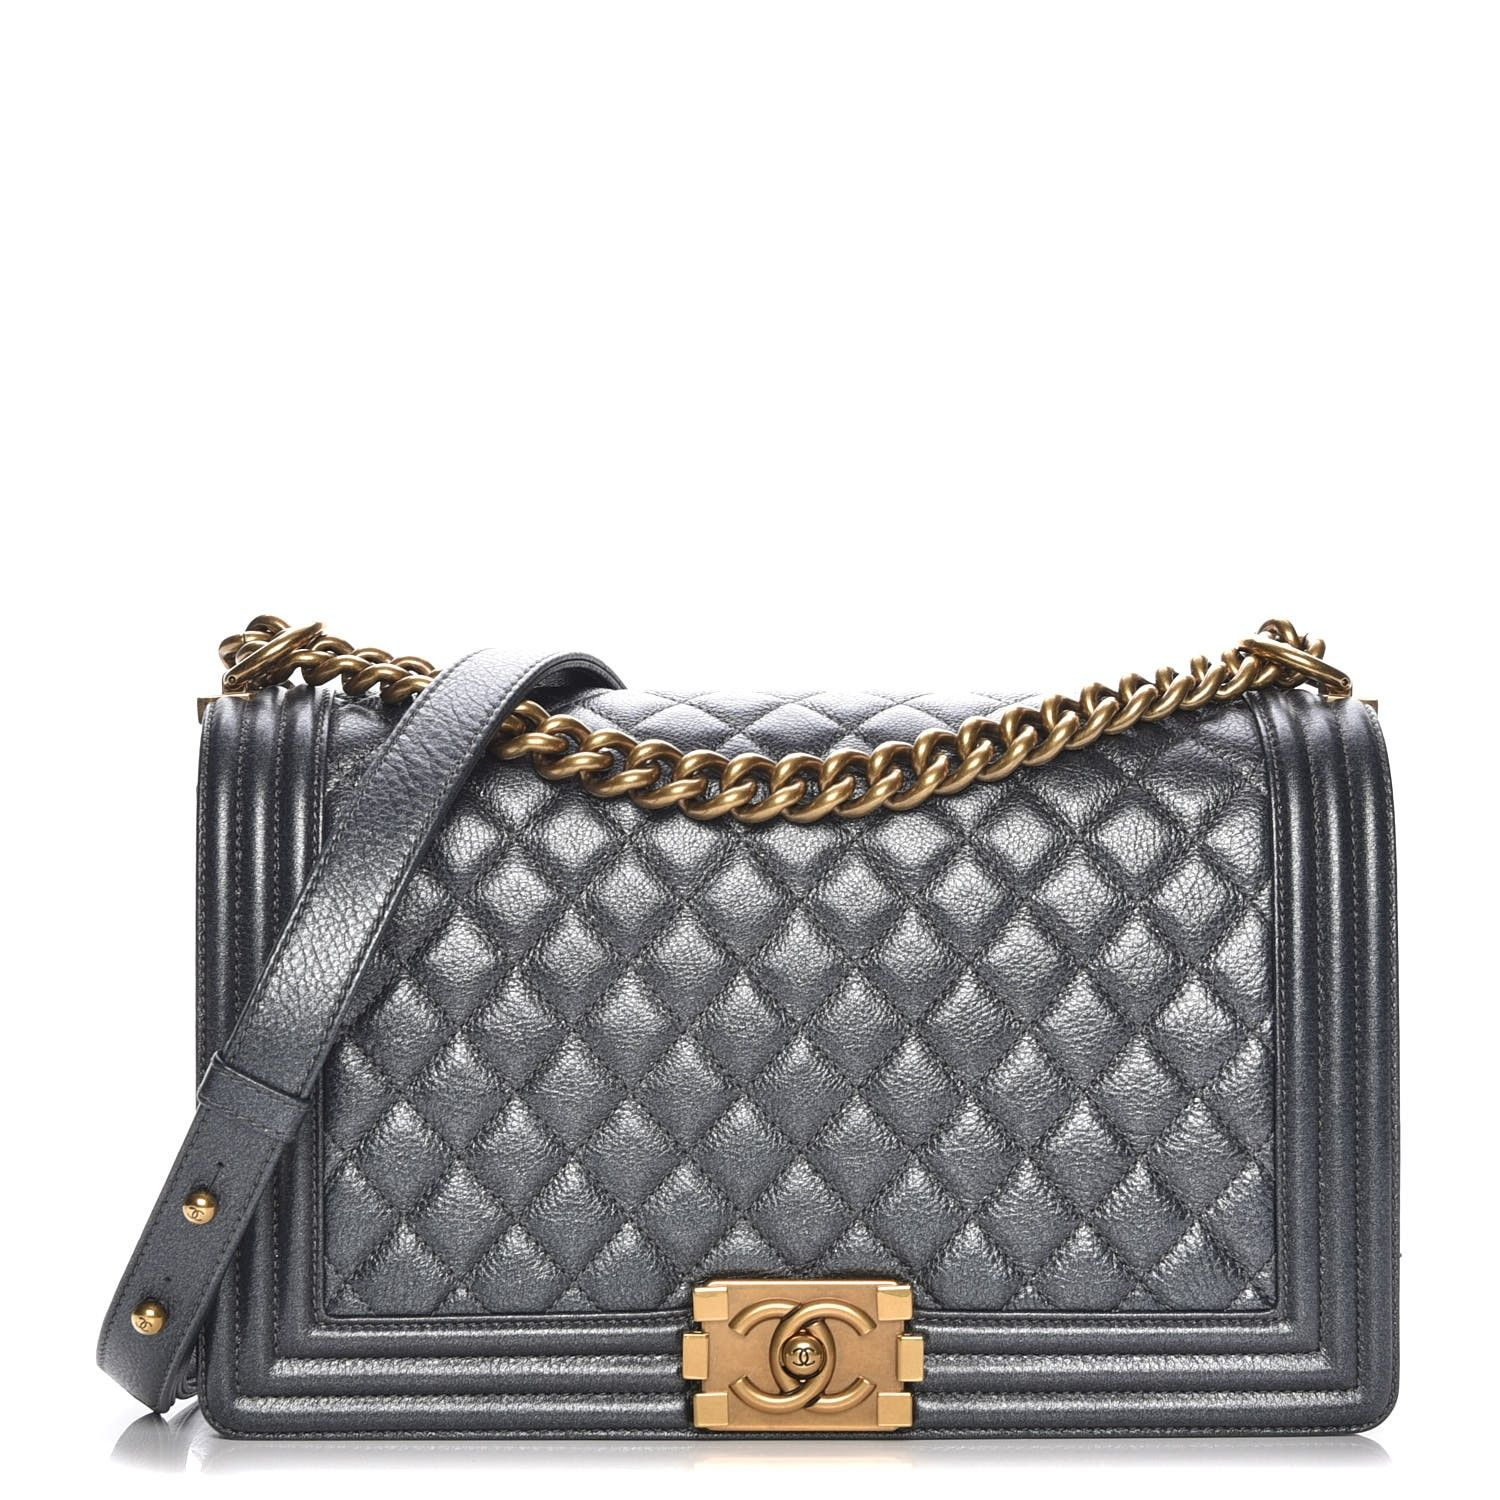 6b52651d4812 This is an authentic CHANEL Pearl Caviar Quilted New Medium Boy Flap in  Charcoal. This